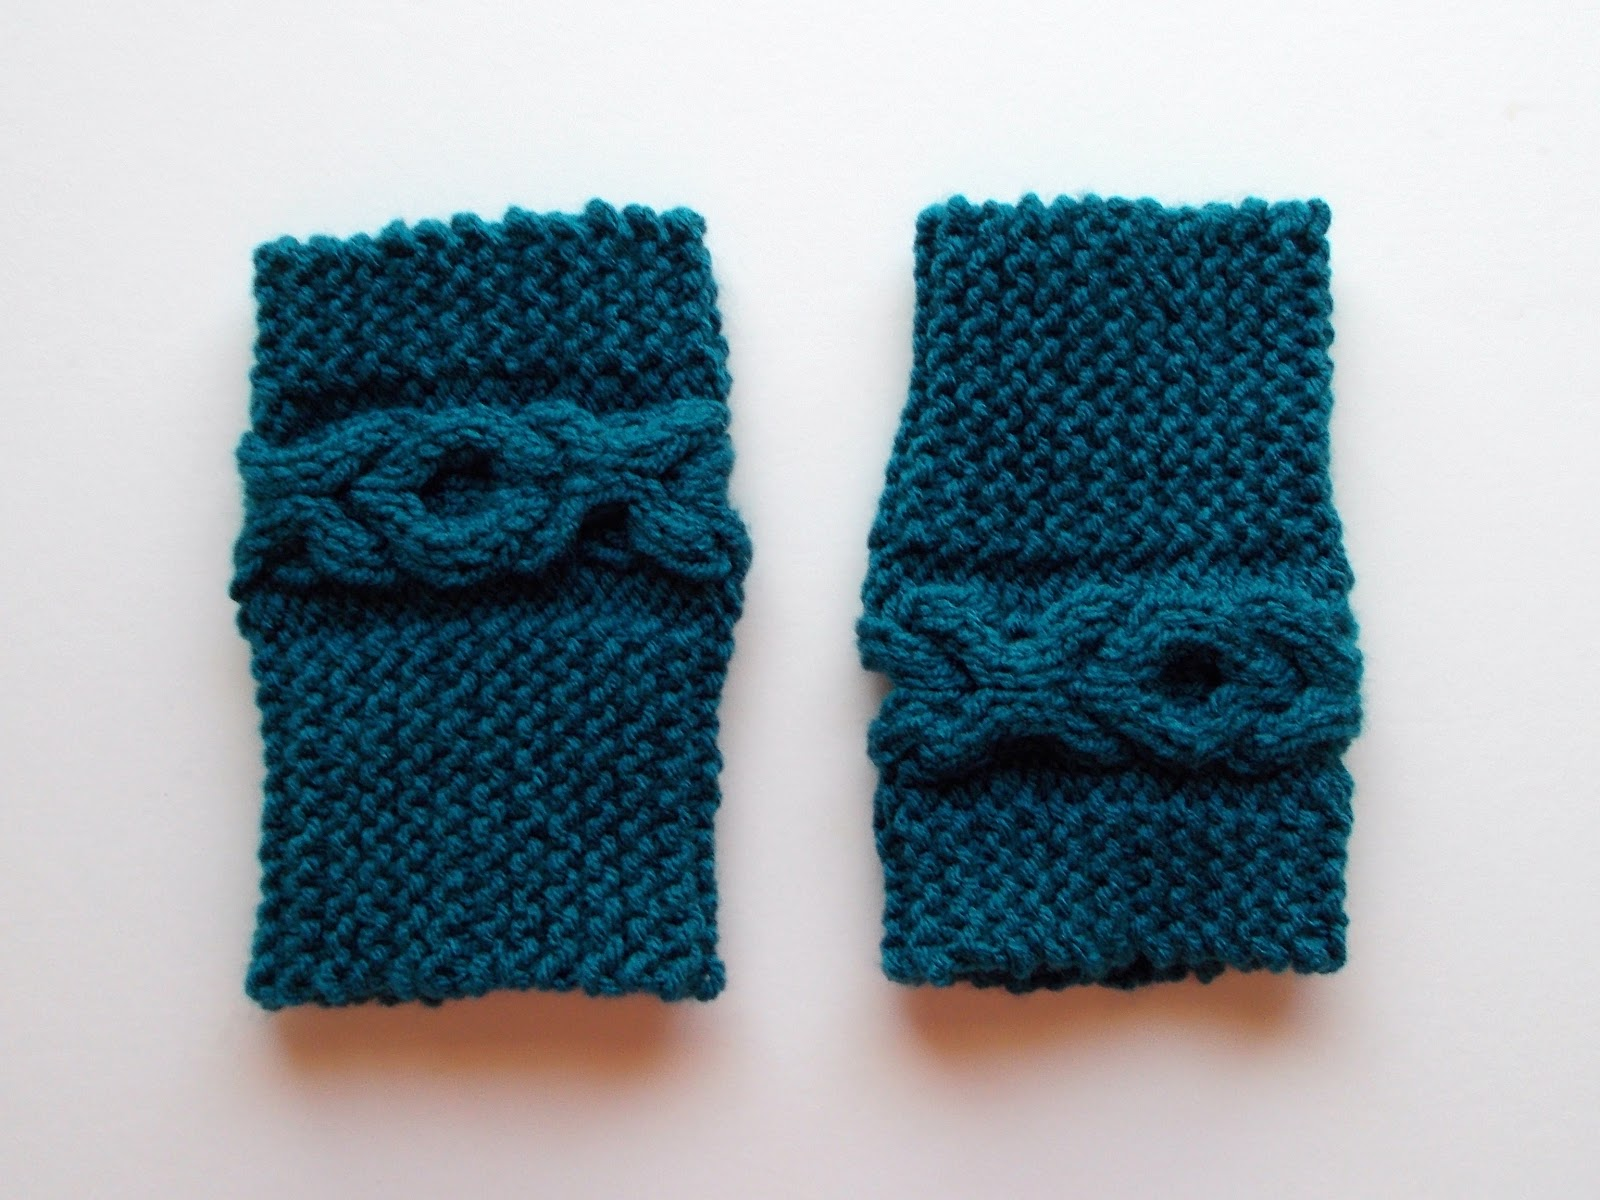 Knit Pattern For Boot Cuffs Free : Boot Cuff Knitting Pattern A Knitting Blog